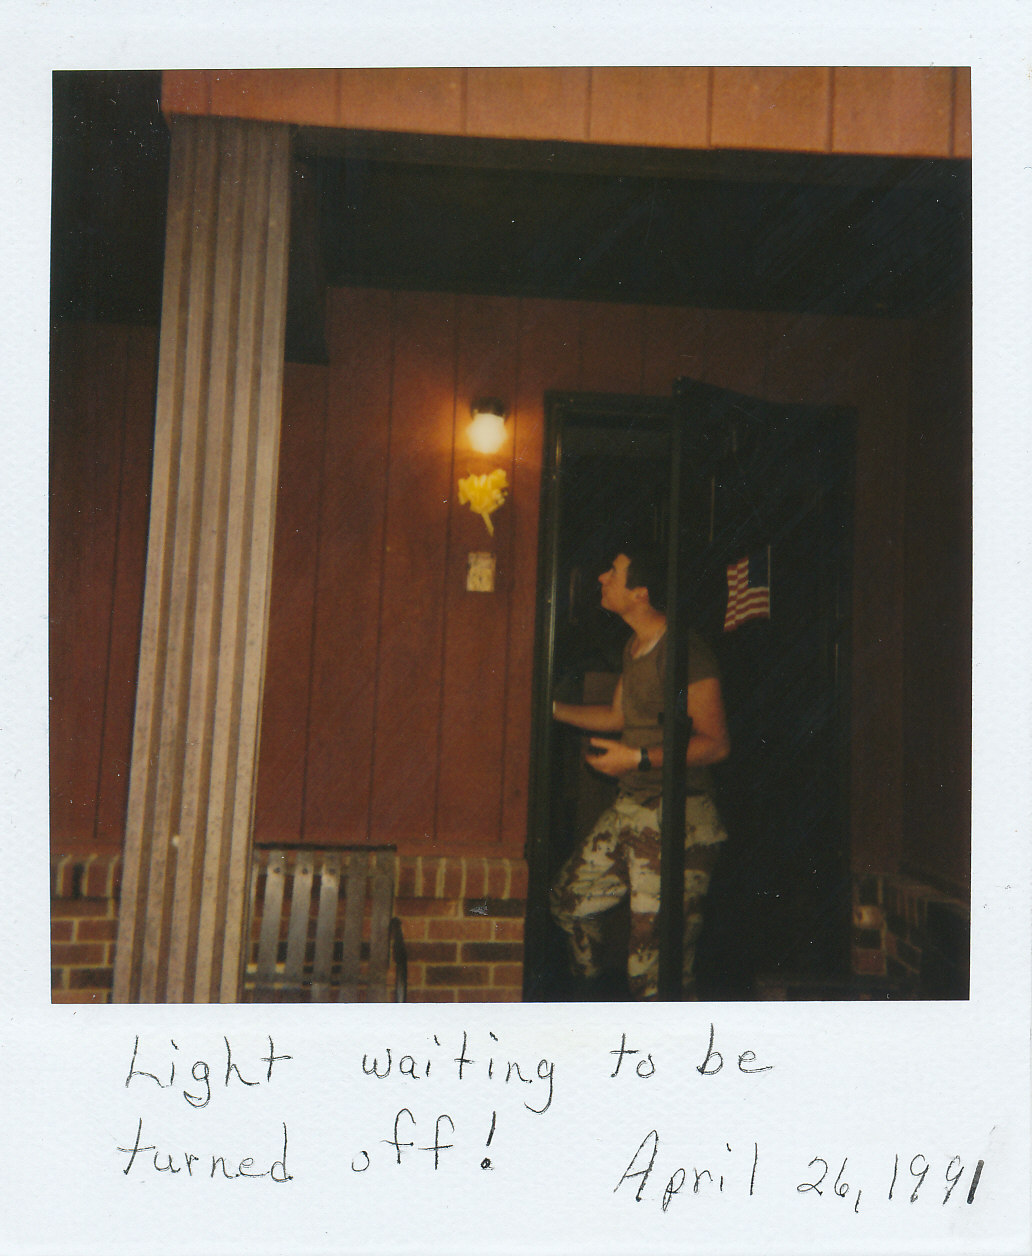 A young man wearing fatigues standing on the front porch of a home